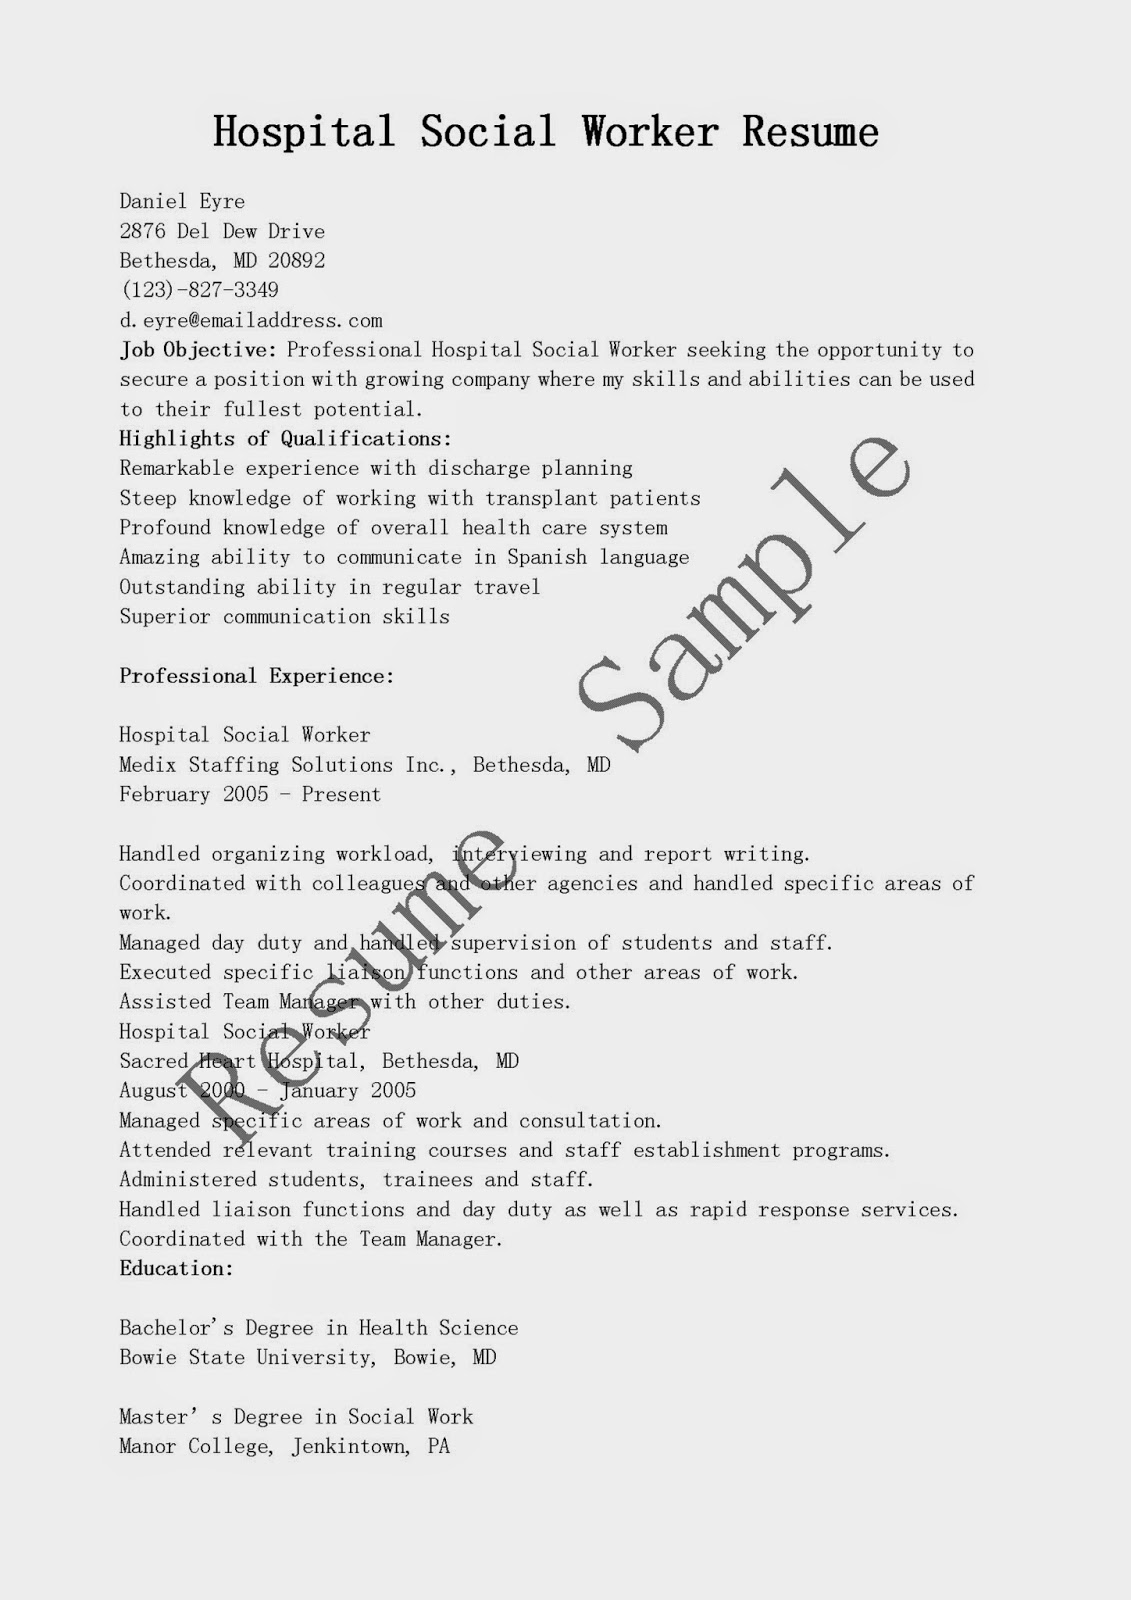 Social Worker Resume Examples Resume Samples Hospital Social Worker Resume Sample